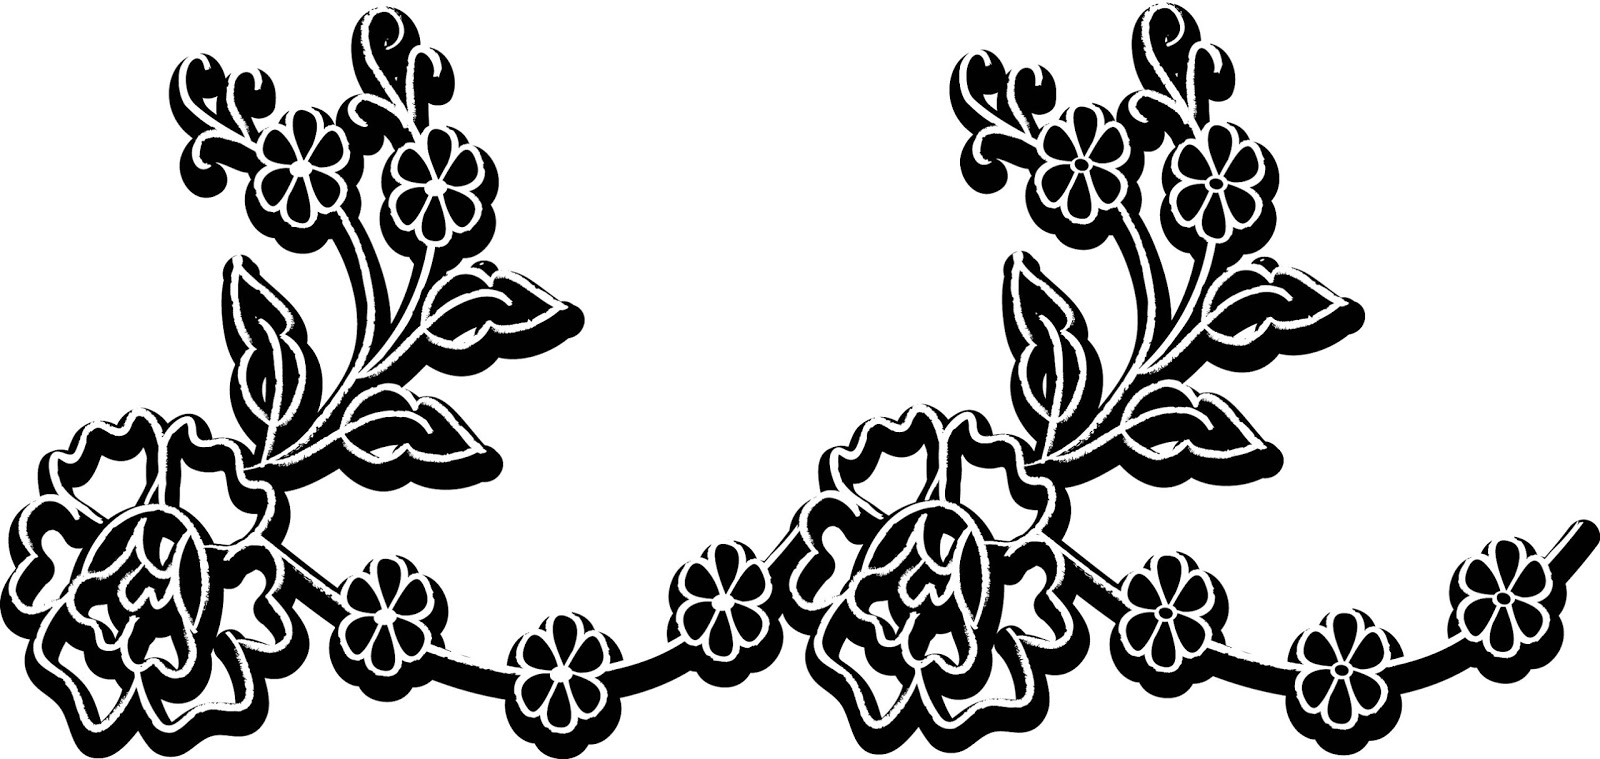 august clipart black and white [ 1600 x 759 Pixel ]